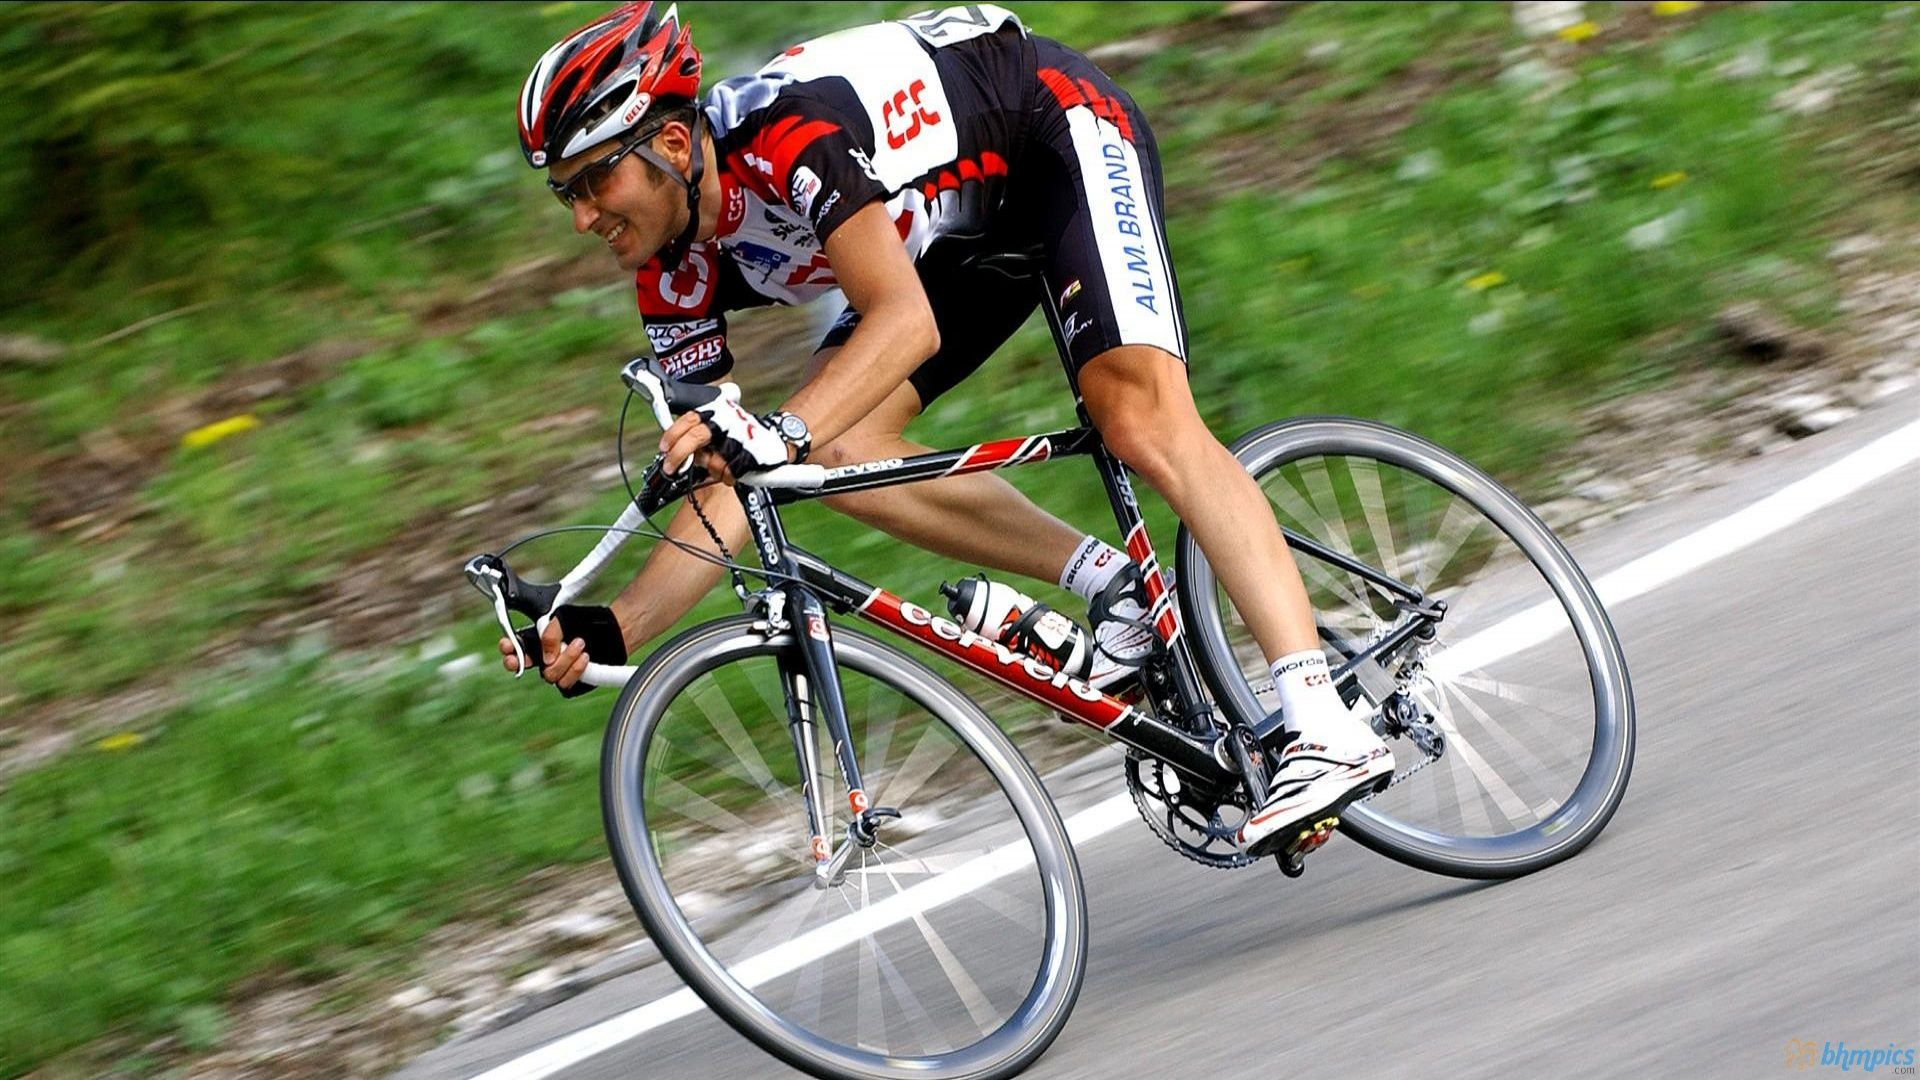 Road Bikes Wallpapers : Get Free top quality Road Bikes